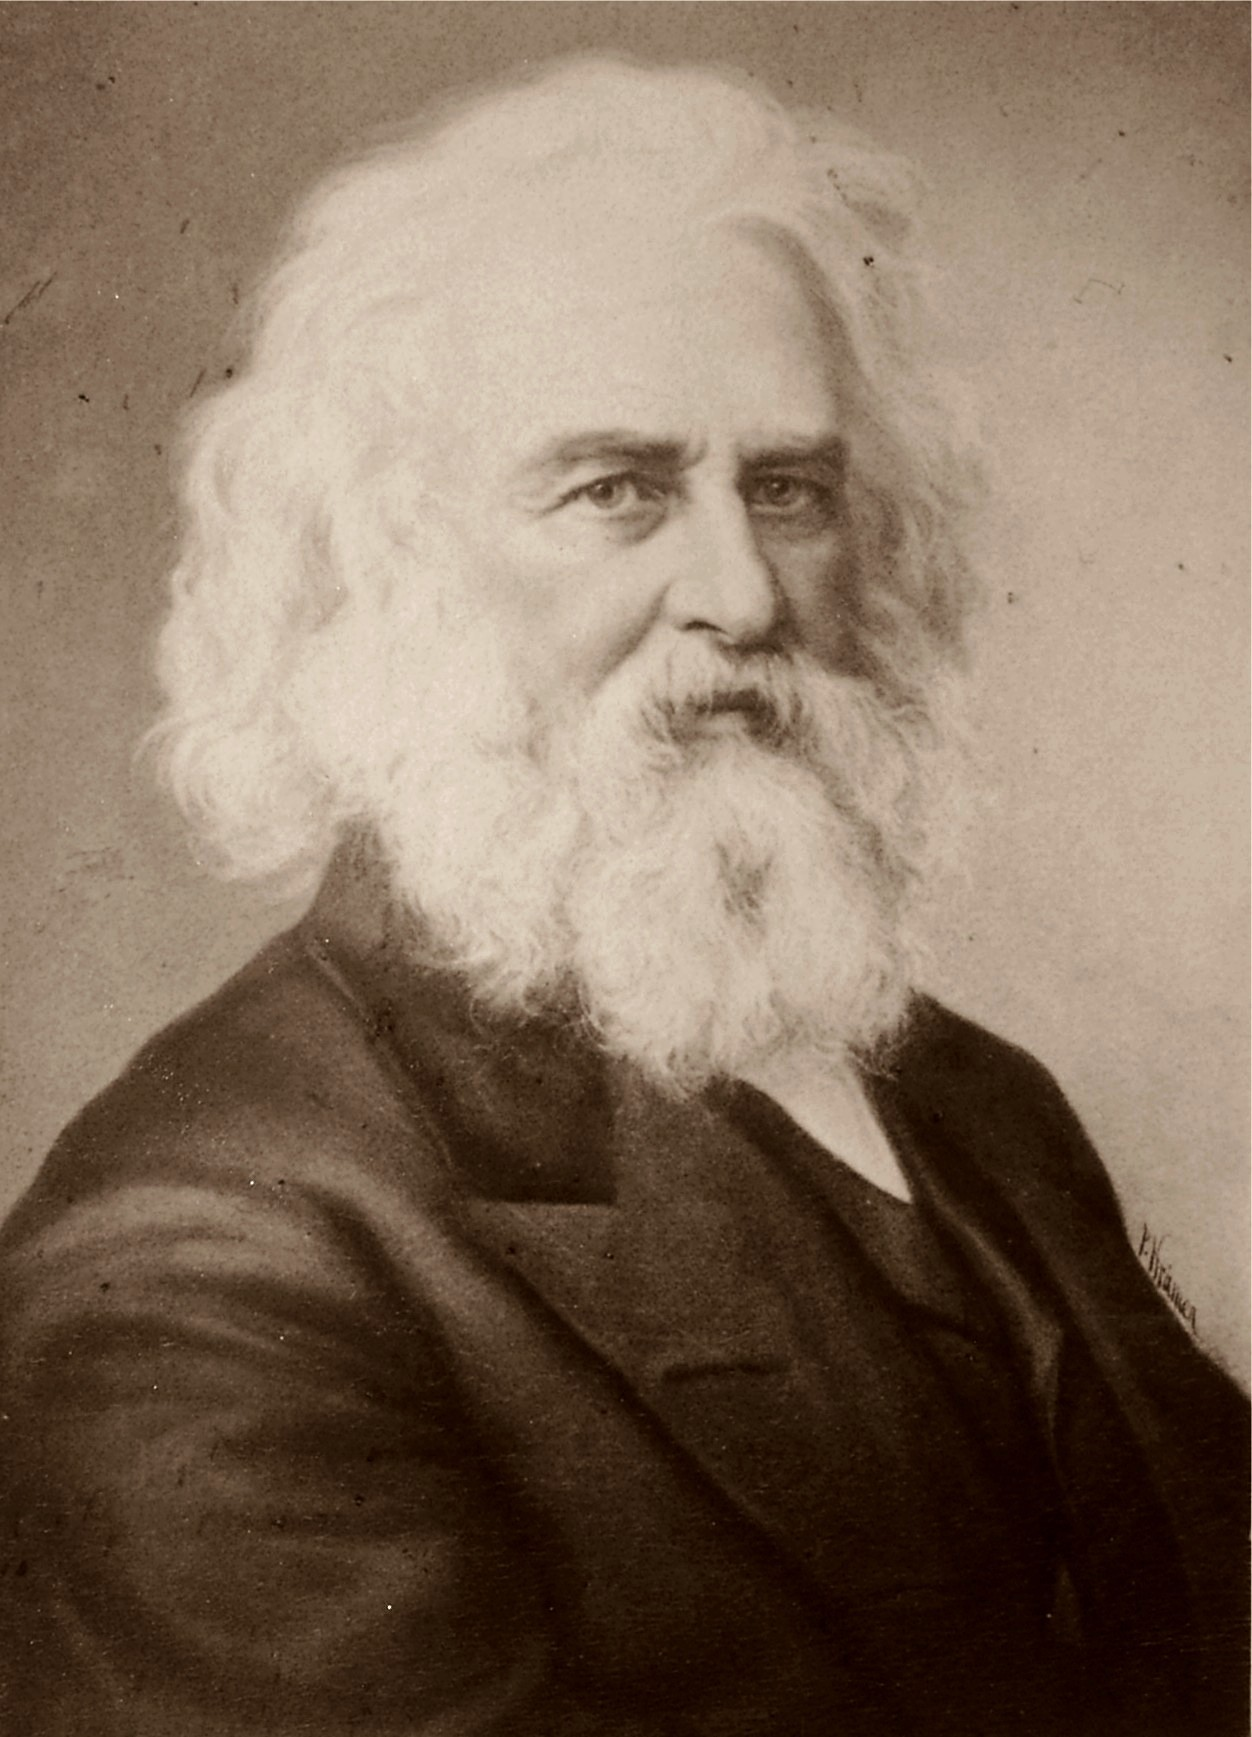 essay about henry longfellow Selected poems of henry wadsworth longfellow (kennebec large print  a  shadow of dante, being an essay towards studying himself, his world and his .